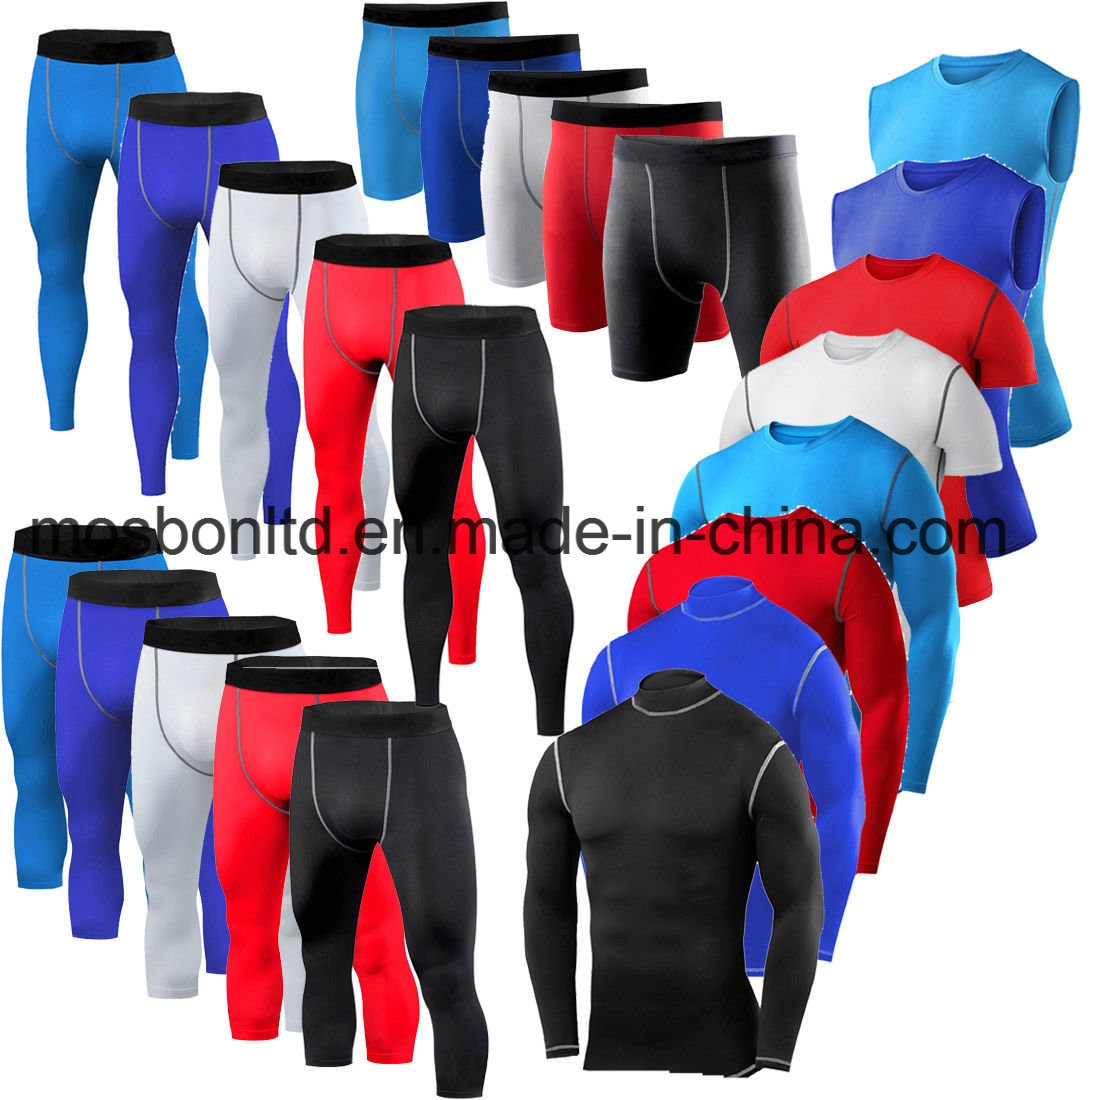 Mens Compression Tops and Pants